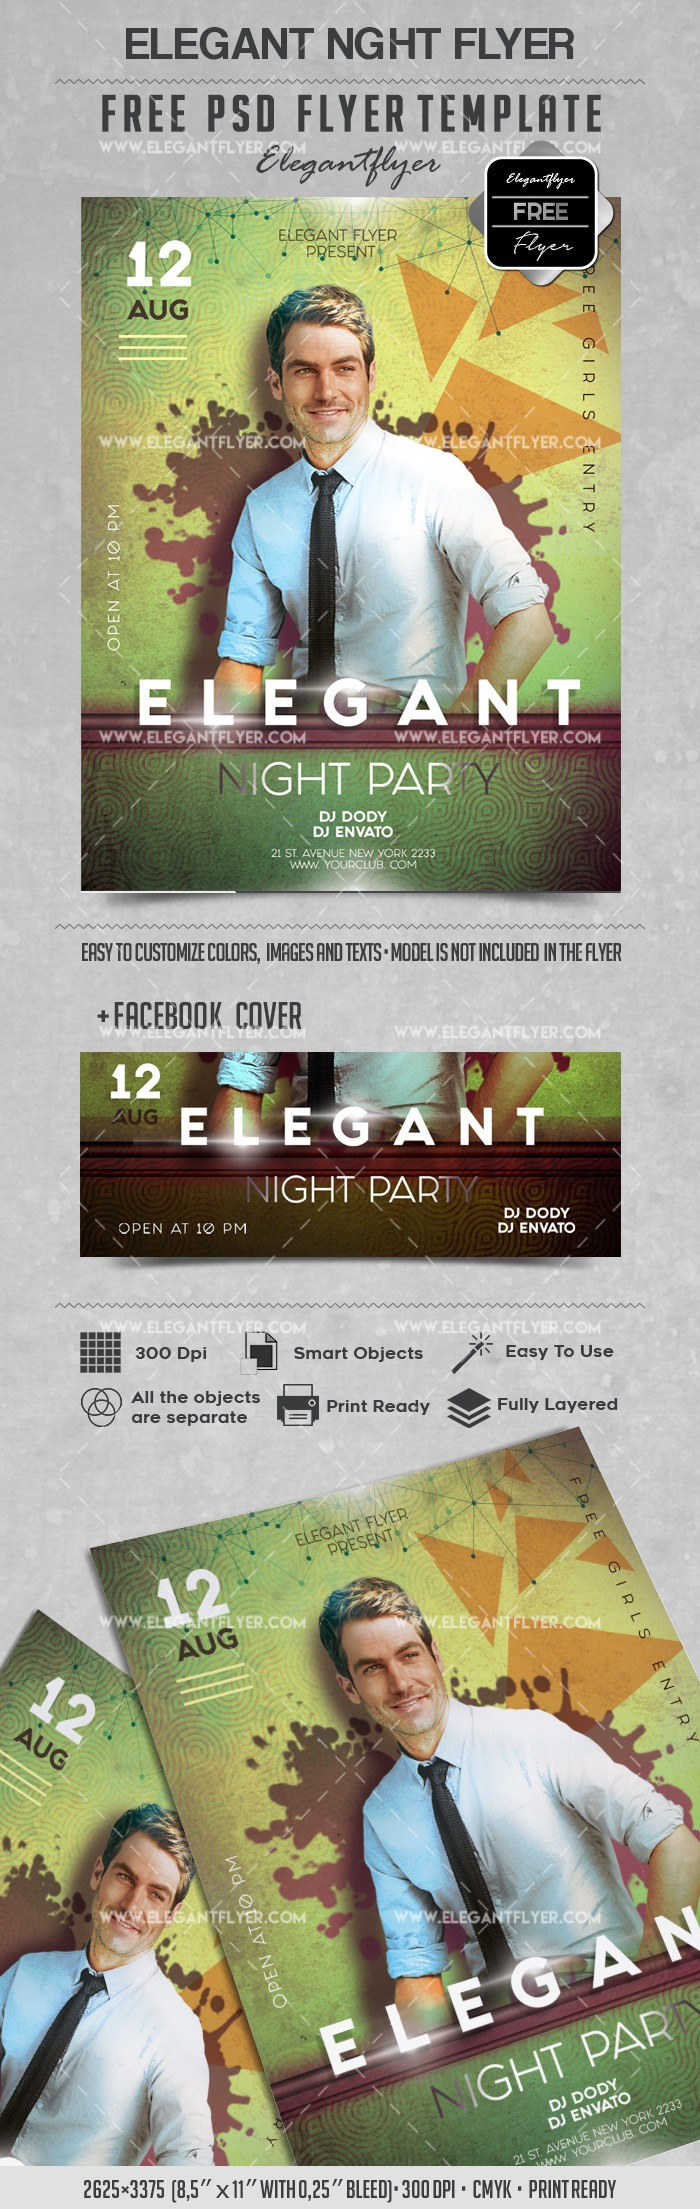 Elegant Night Party – Free Flyer PSD Template